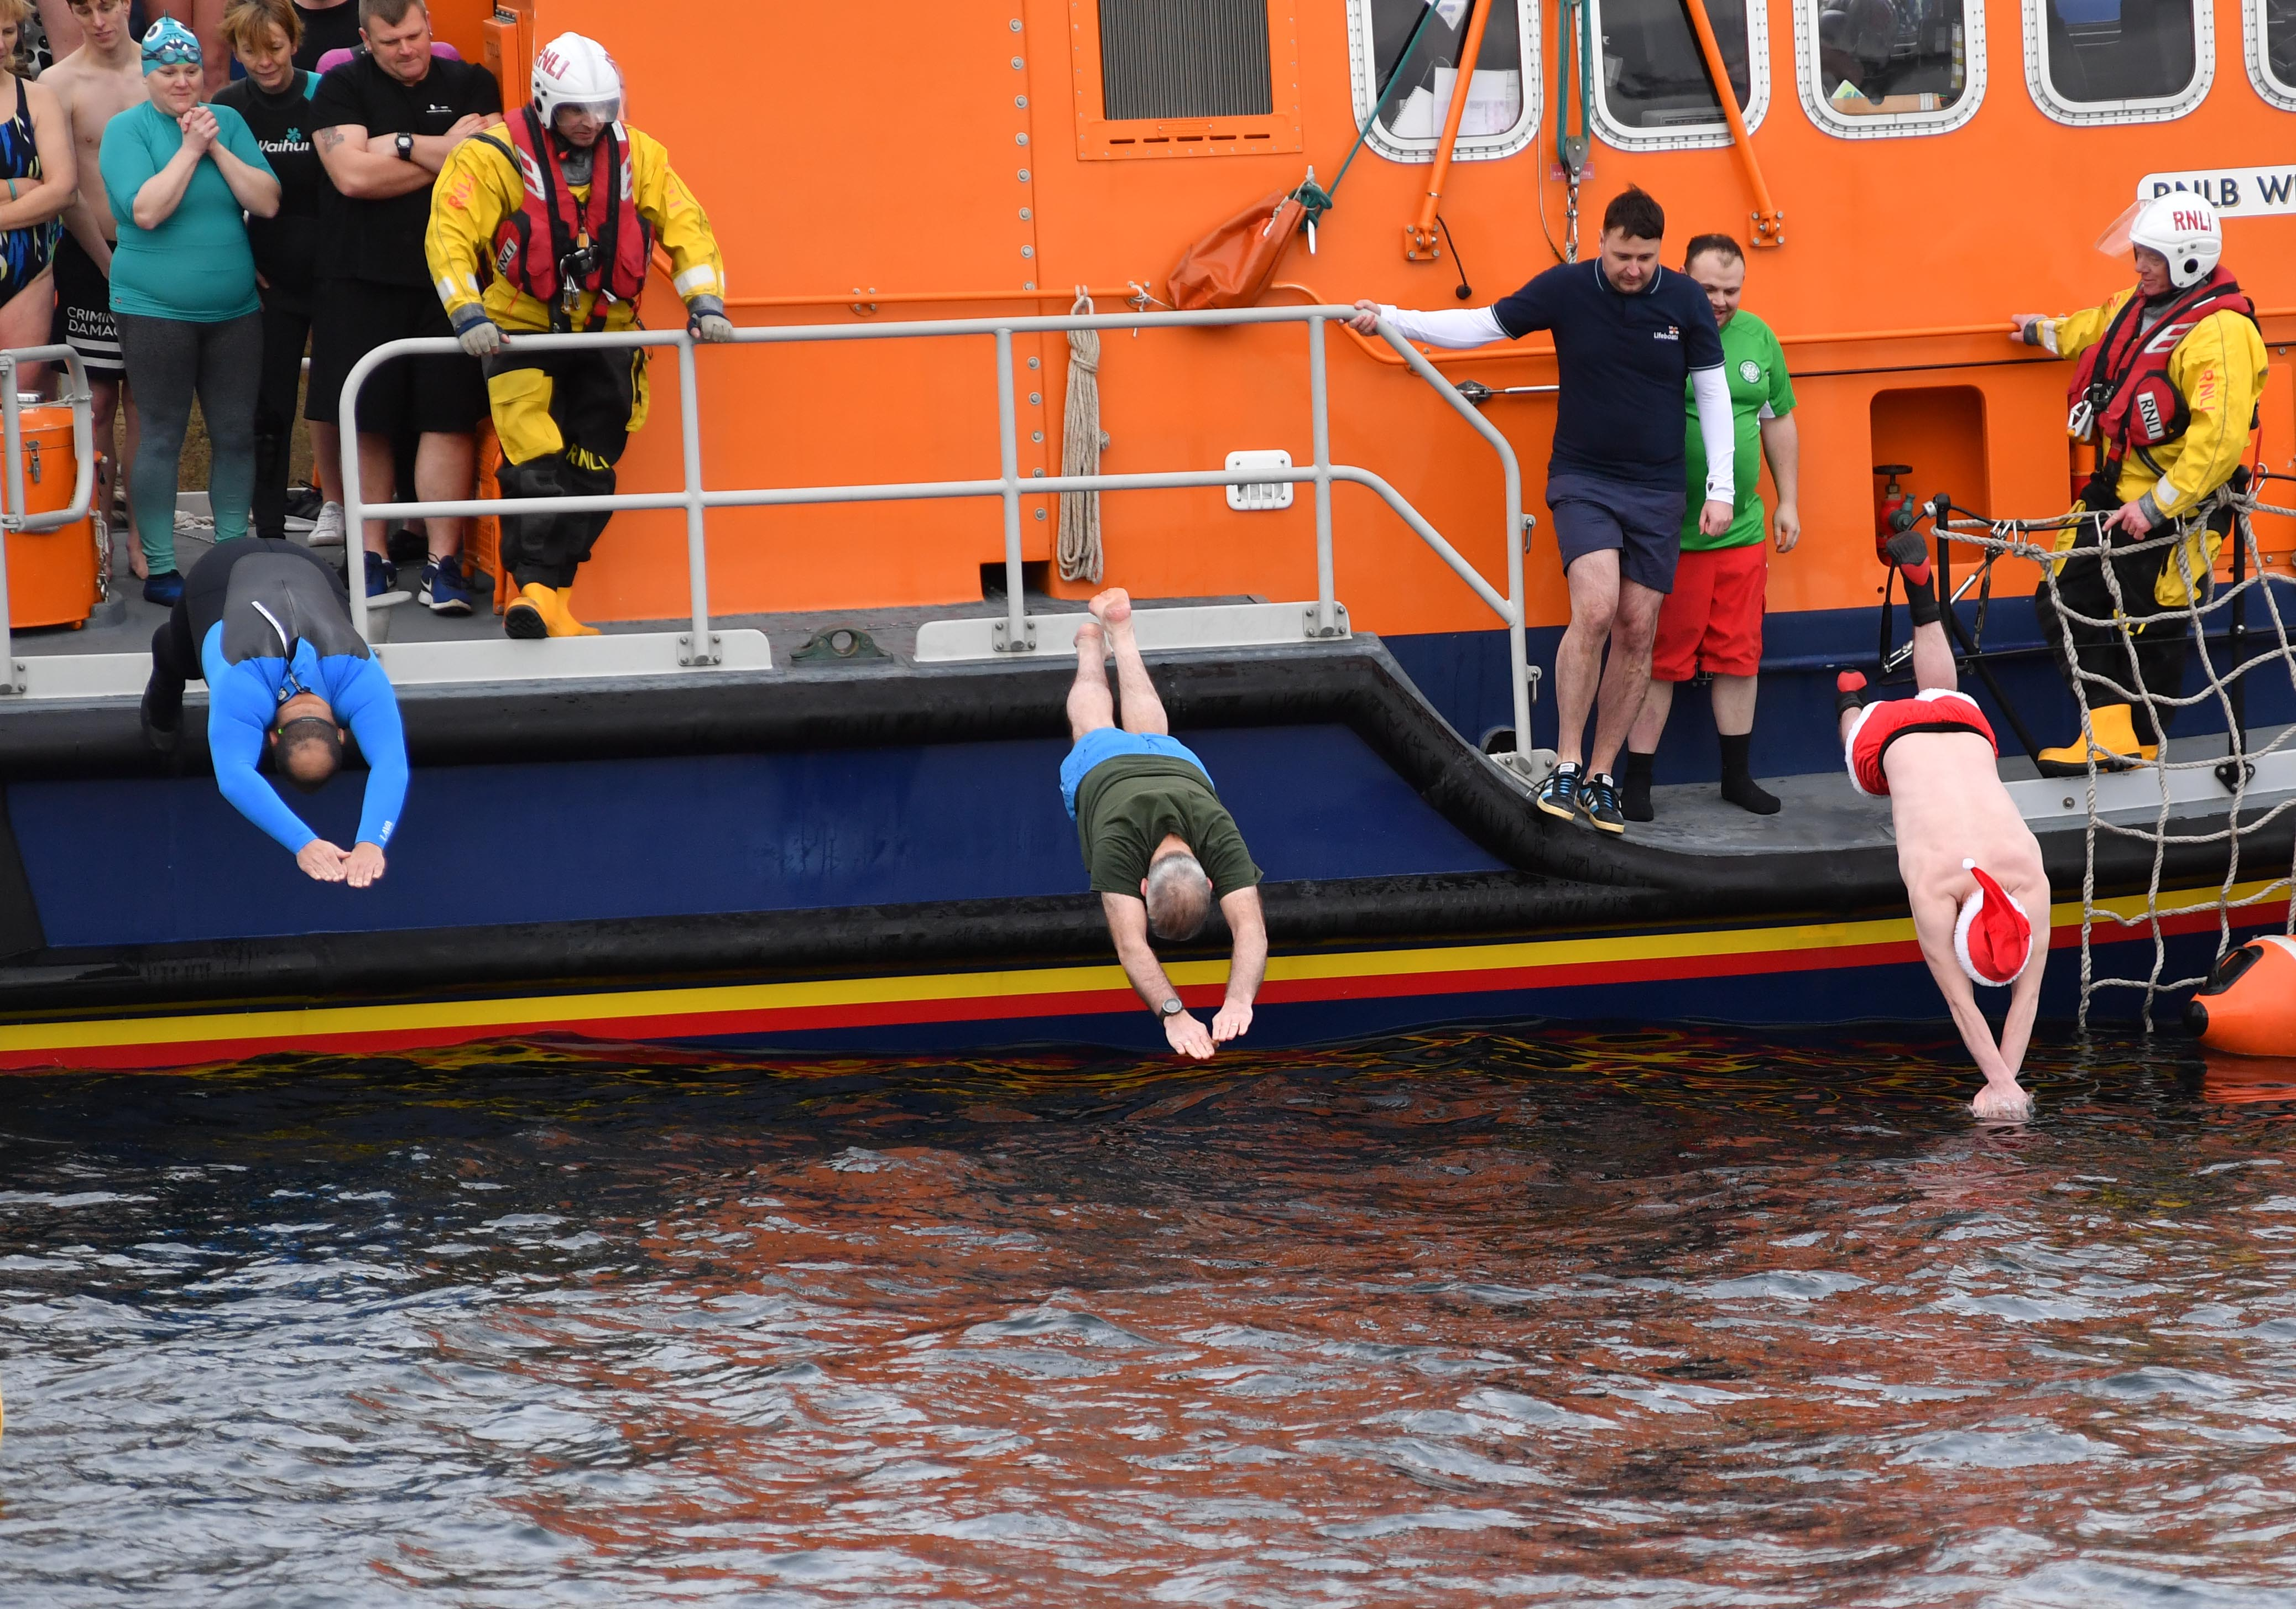 Swimmers brave the low temperature for the Boxing Day swim across Fraserburgh harbour in aid of the RNLI.